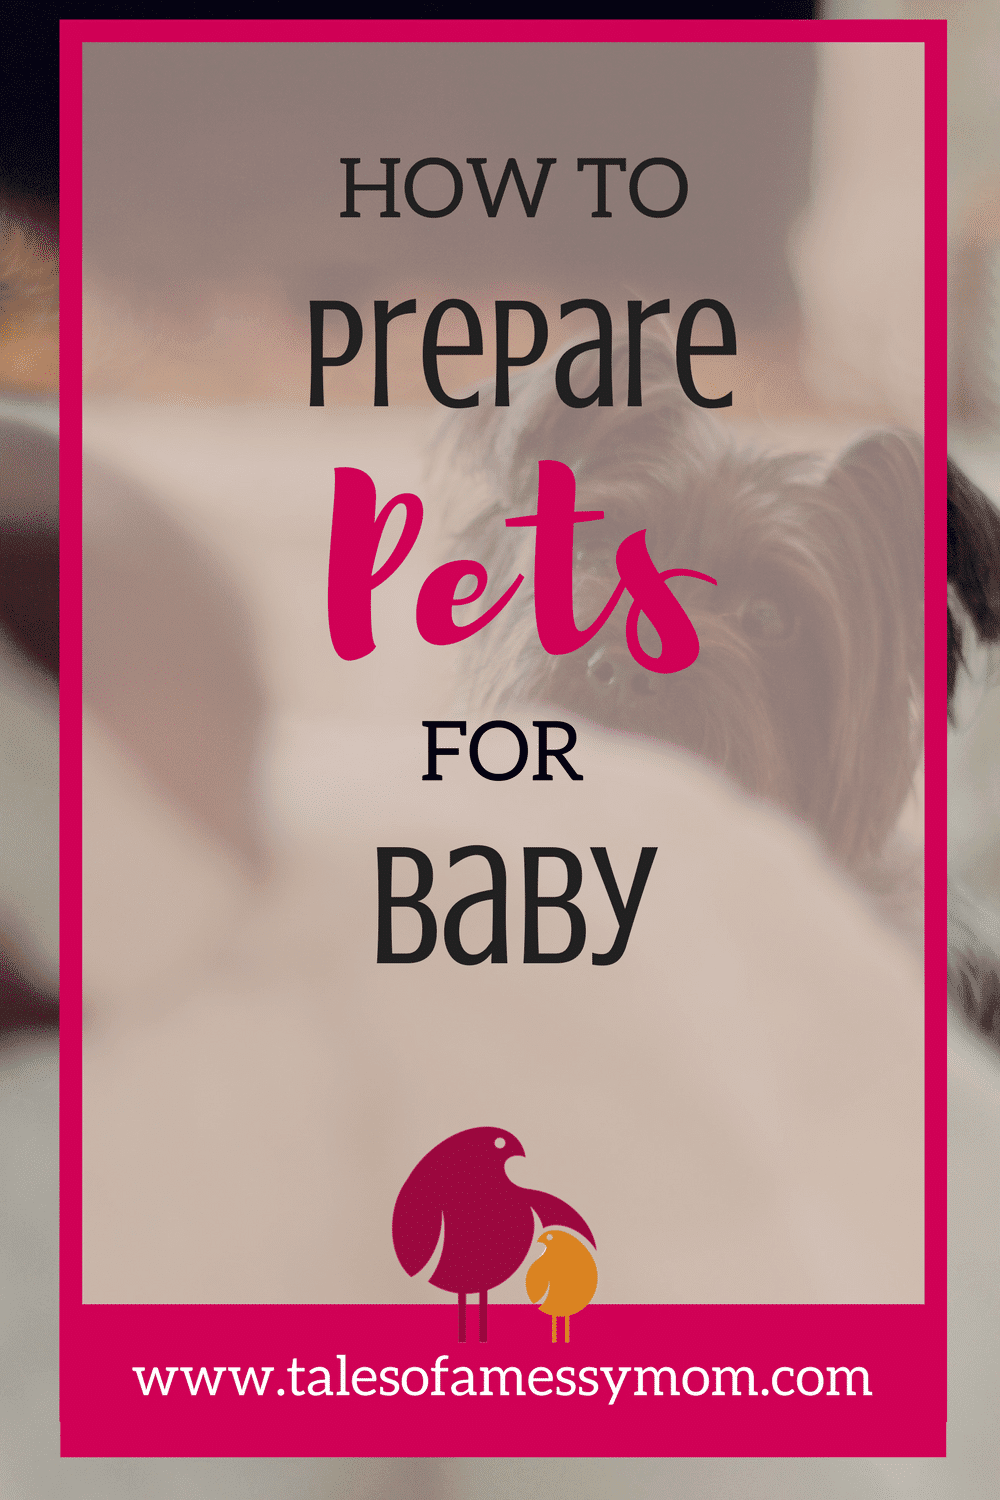 Create a safe and happy environment for the whole family by preparing your pets for baby. Here is how we prepared our dogs and cats. http://talesofamessymom.com